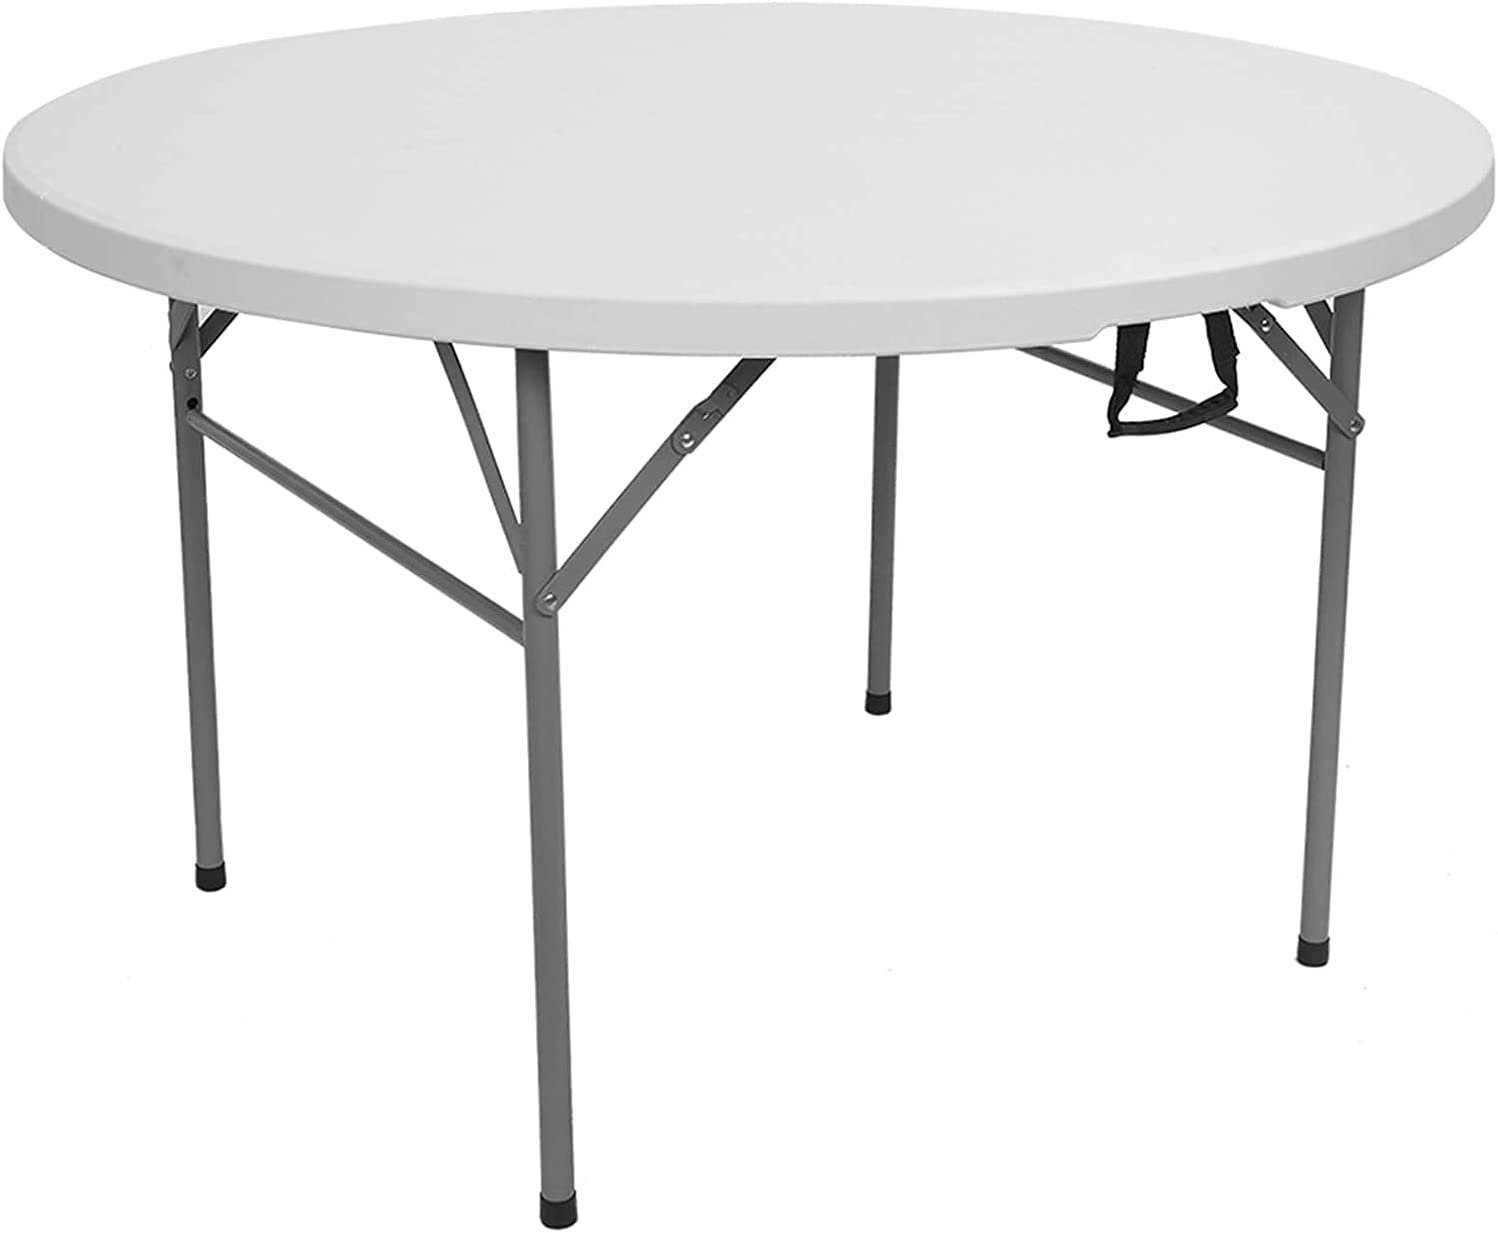 Ranking TOP2 HDHUIXS Compactly 48inch Round Outdoor Table Charlotte Mall Folding Uti